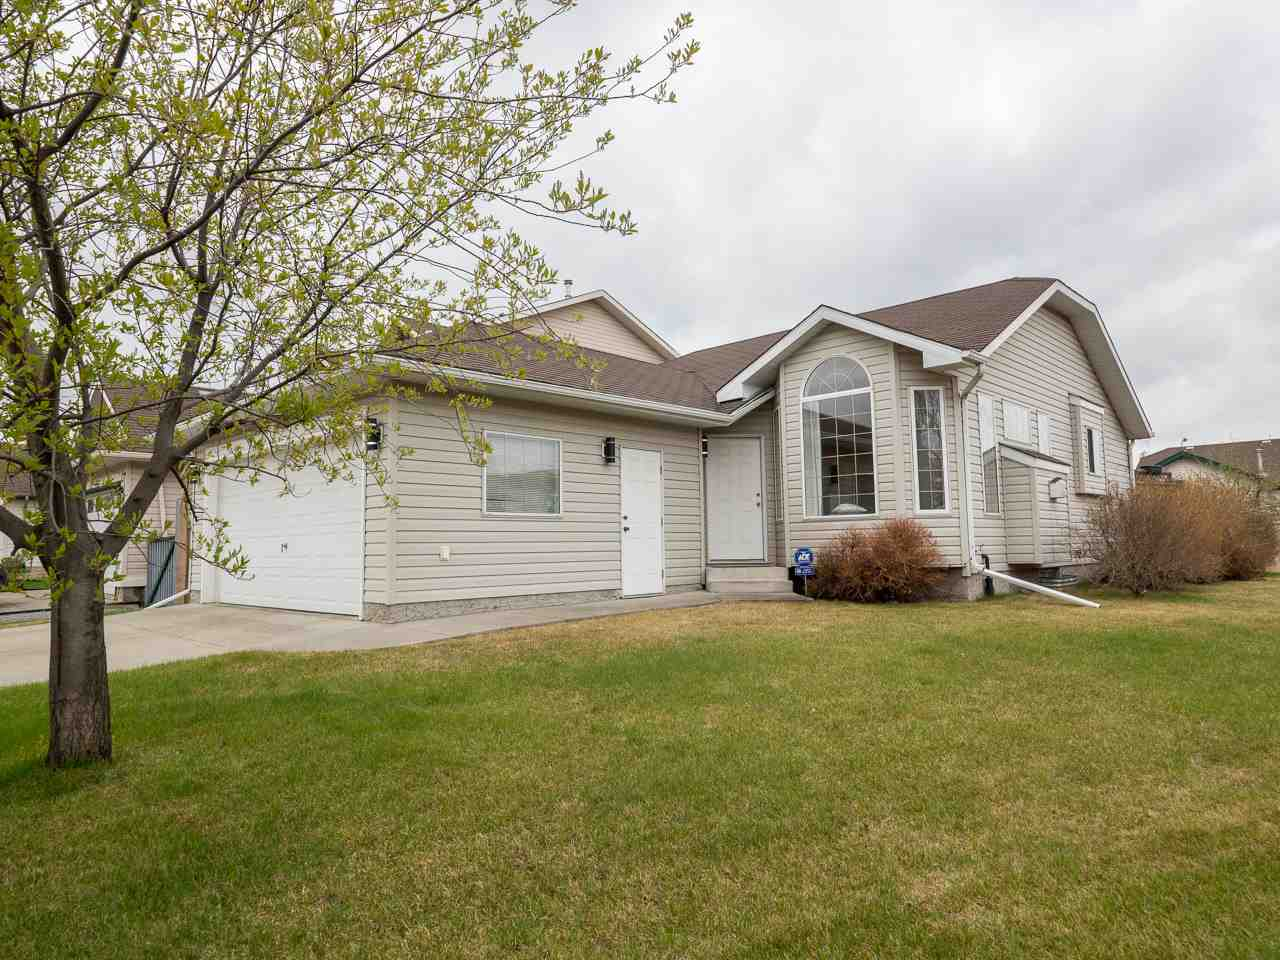 Main Photo: 4052 29 Street NW in Edmonton: Zone 30 House for sale : MLS®# E4110478